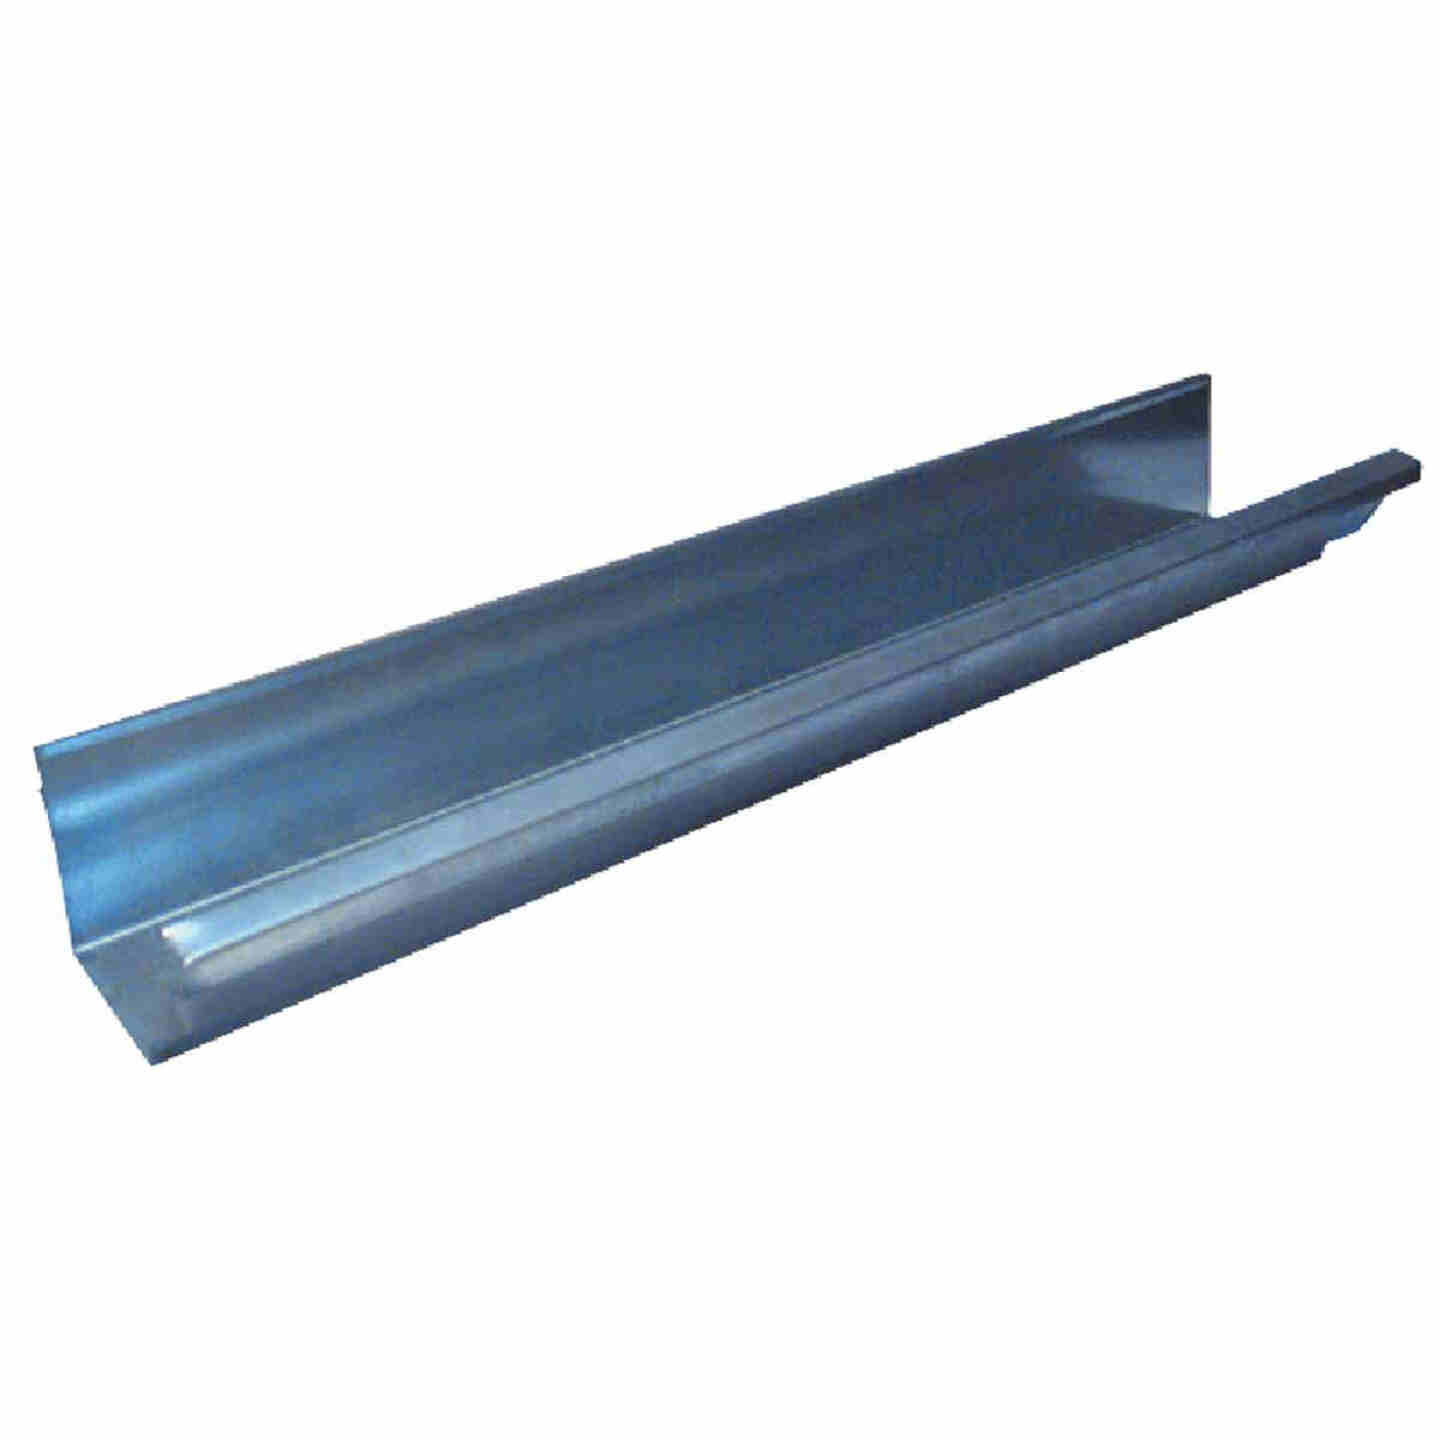 NorWesco 4 In. x 10 Ft. K-Style Galvanized Gutter Image 1